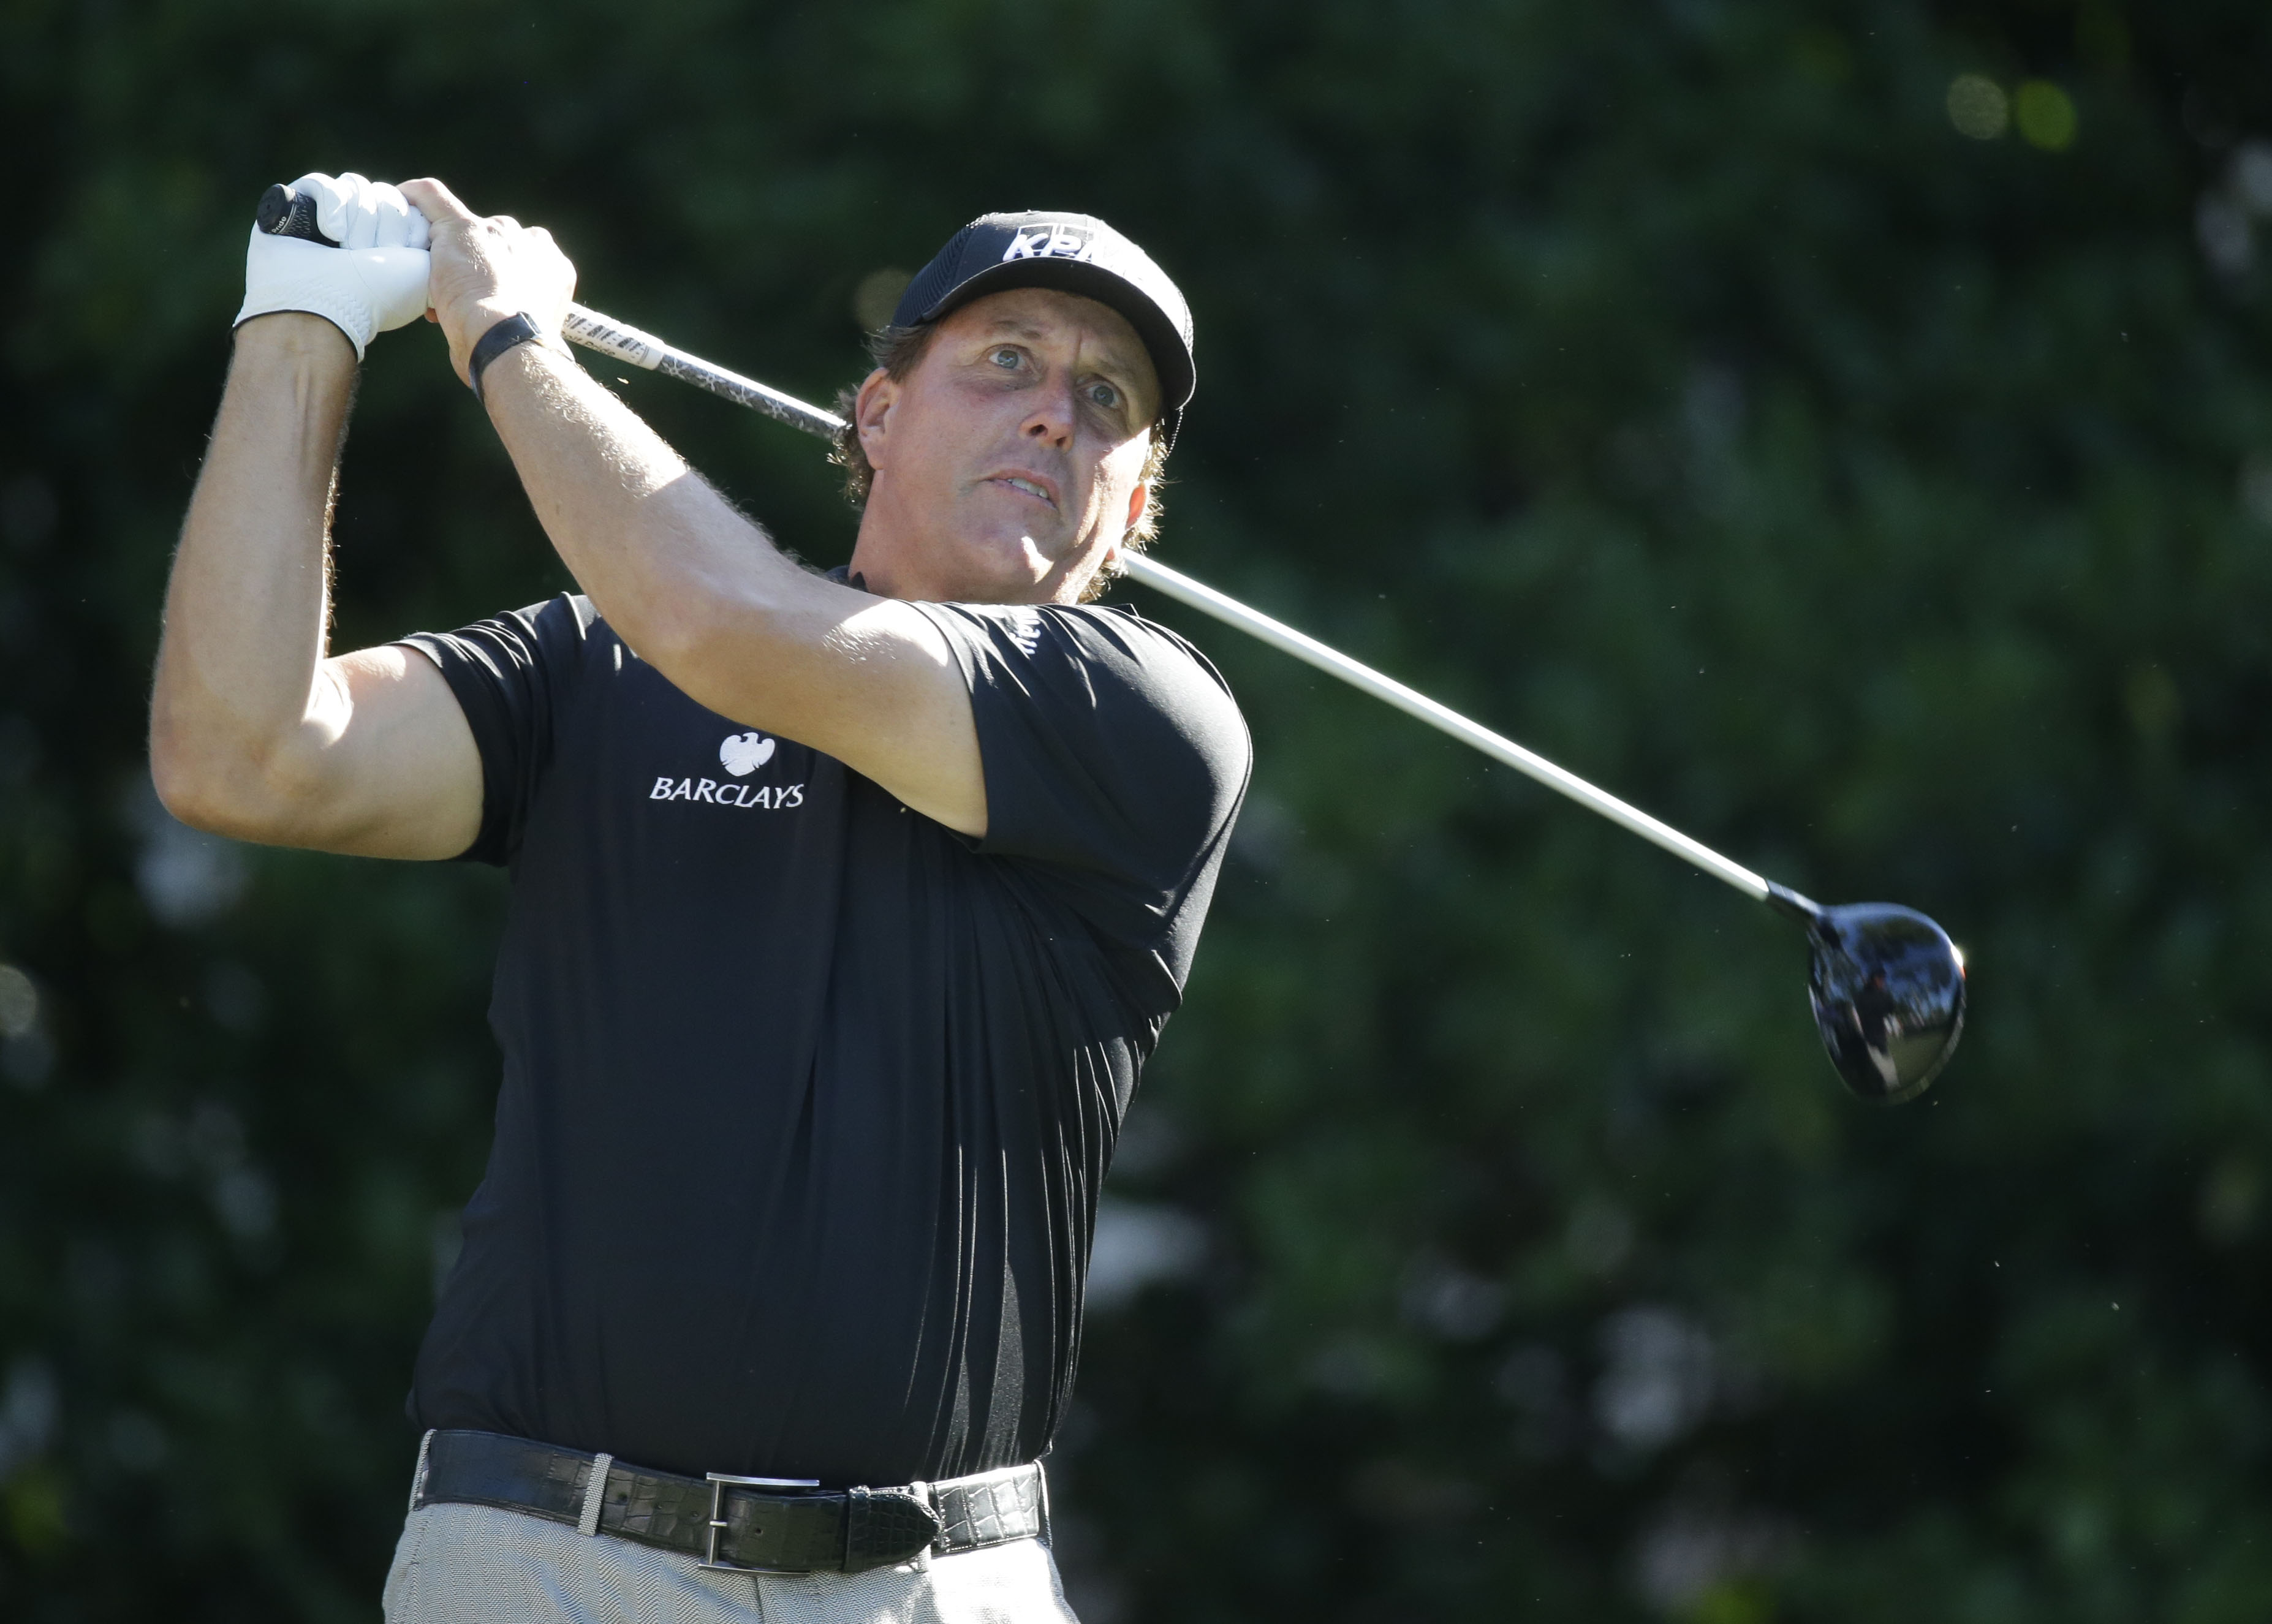 Phil Mickelson hits from the 11th tee during the second round of The Players Championship golf tournament Friday, May 8, 2015, in Ponte Vedra Beach, Fla. (AP Photo/John Raoux)